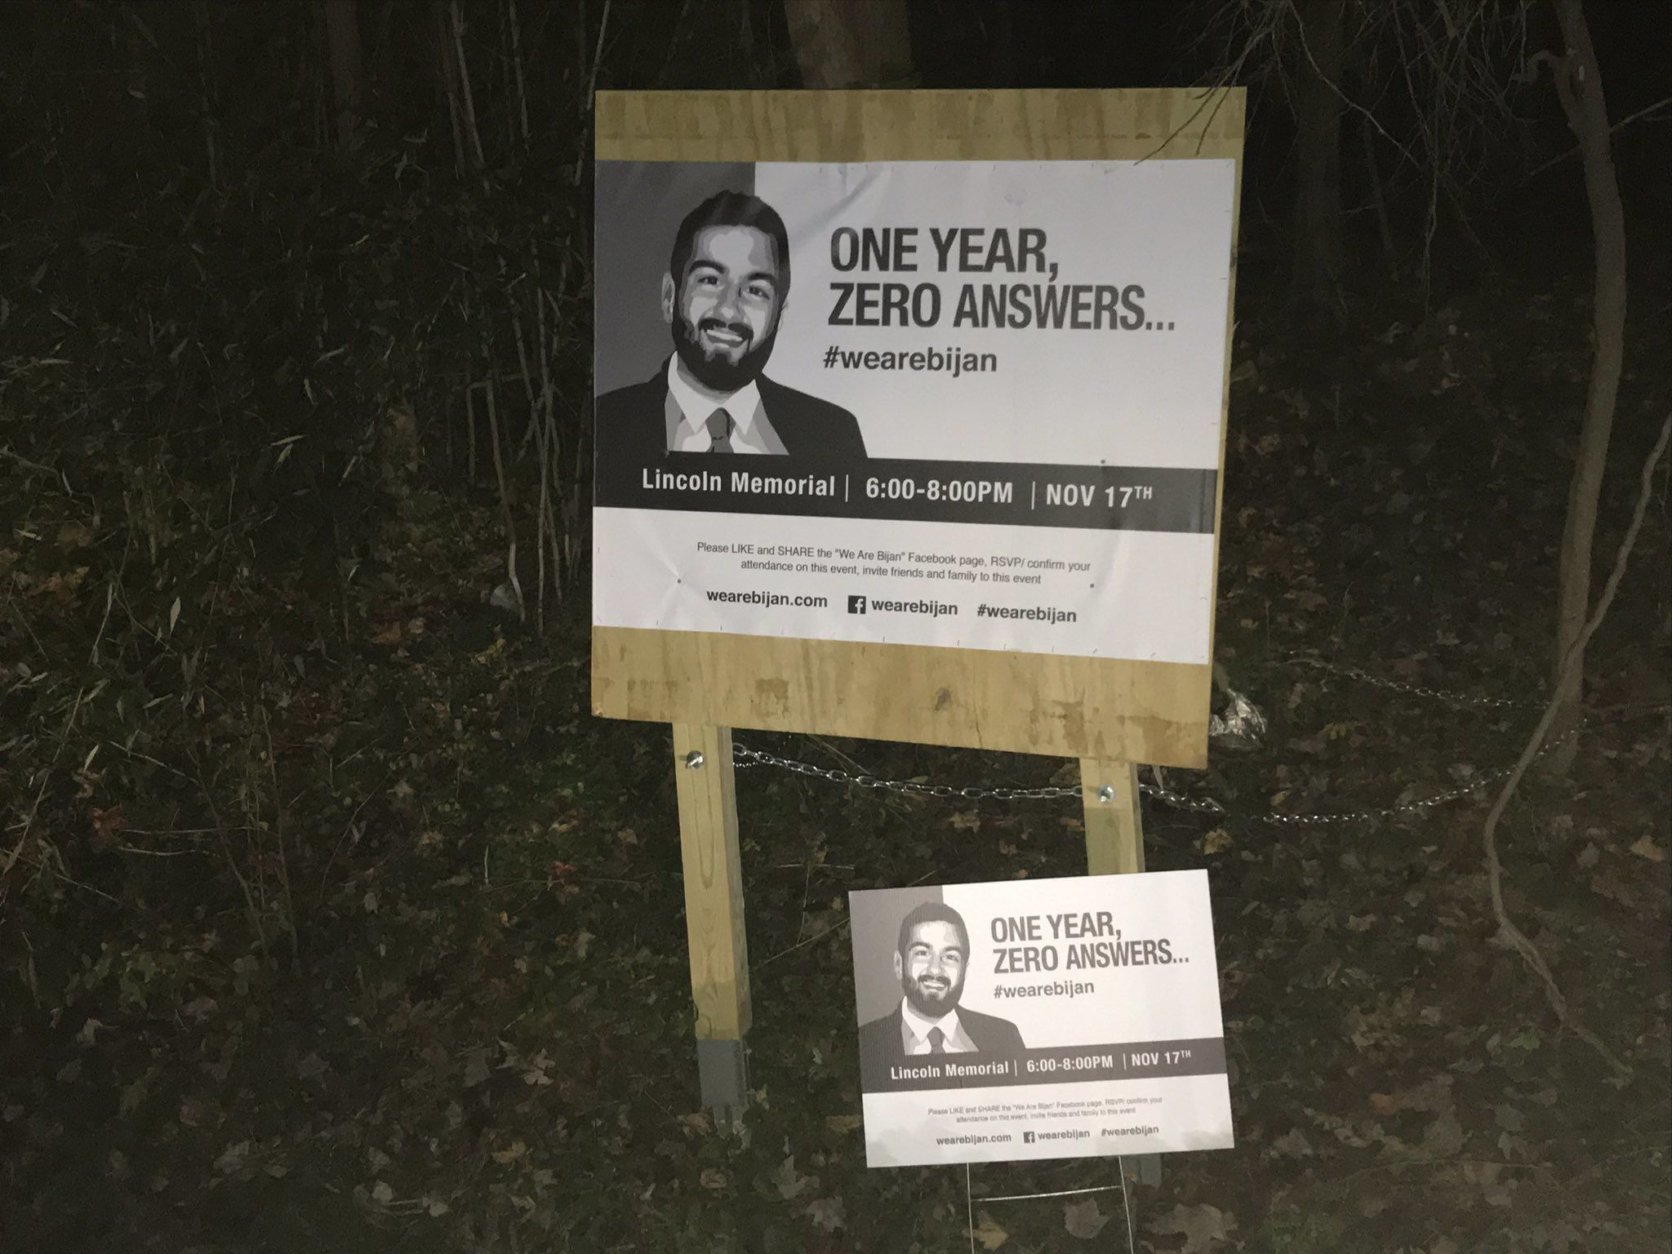 A sign now marks the area where 25-year-old Bijan Ghaisar was fatally shot by U.S. Park Police nearly a year ago, on Nov. 17, 2017. (WTOP/Michelle Basch)